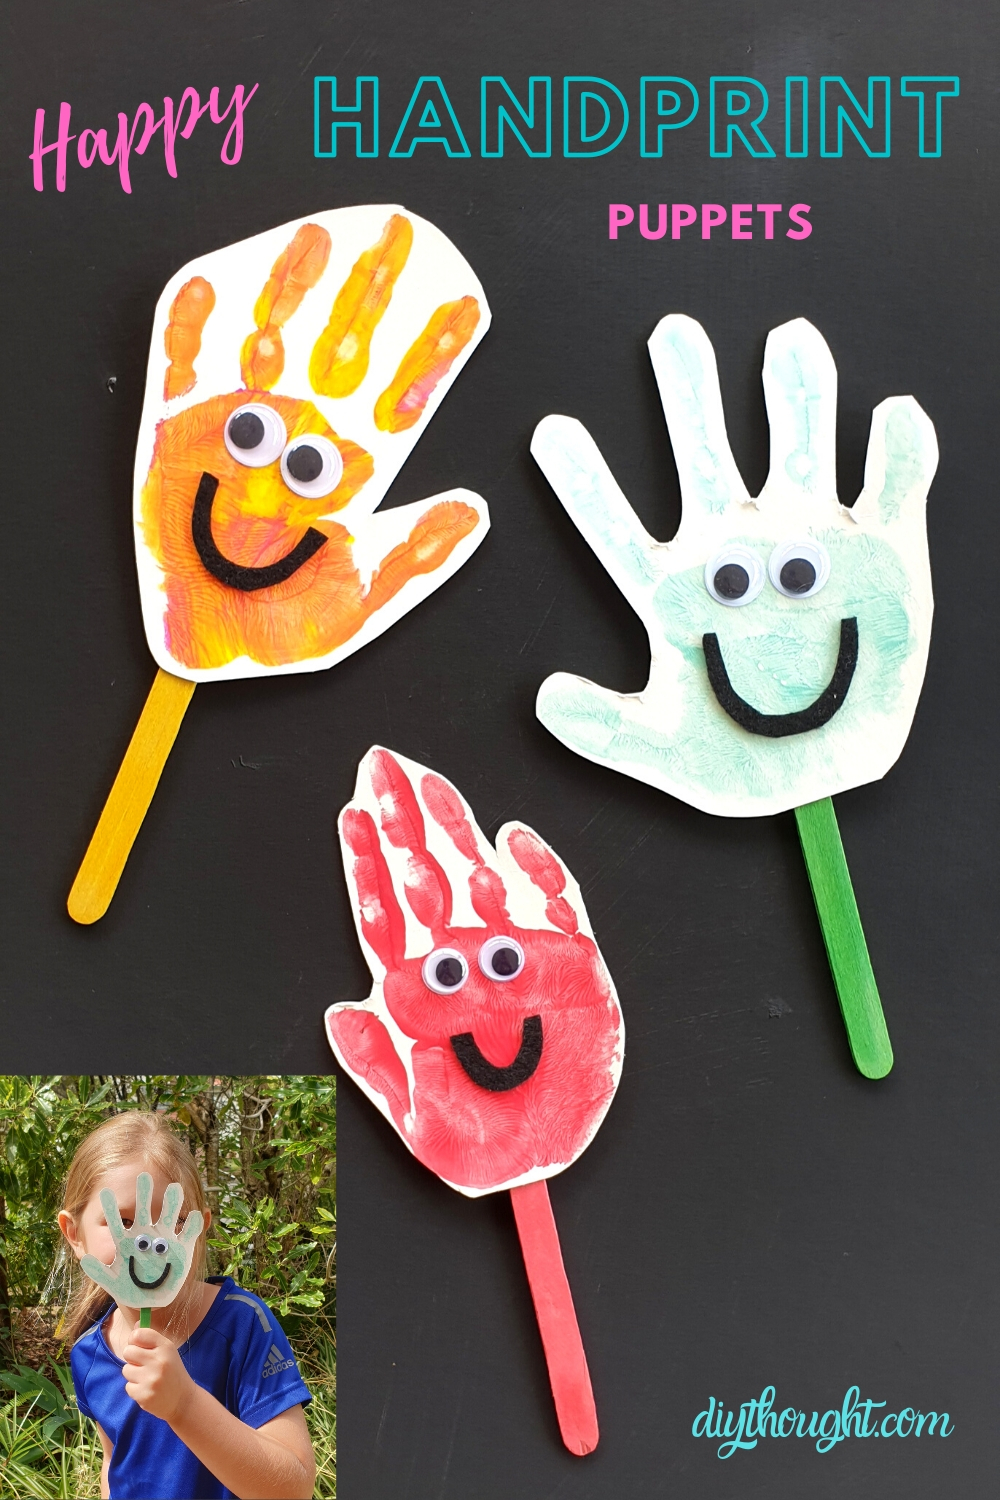 DIY happy handprint puppets